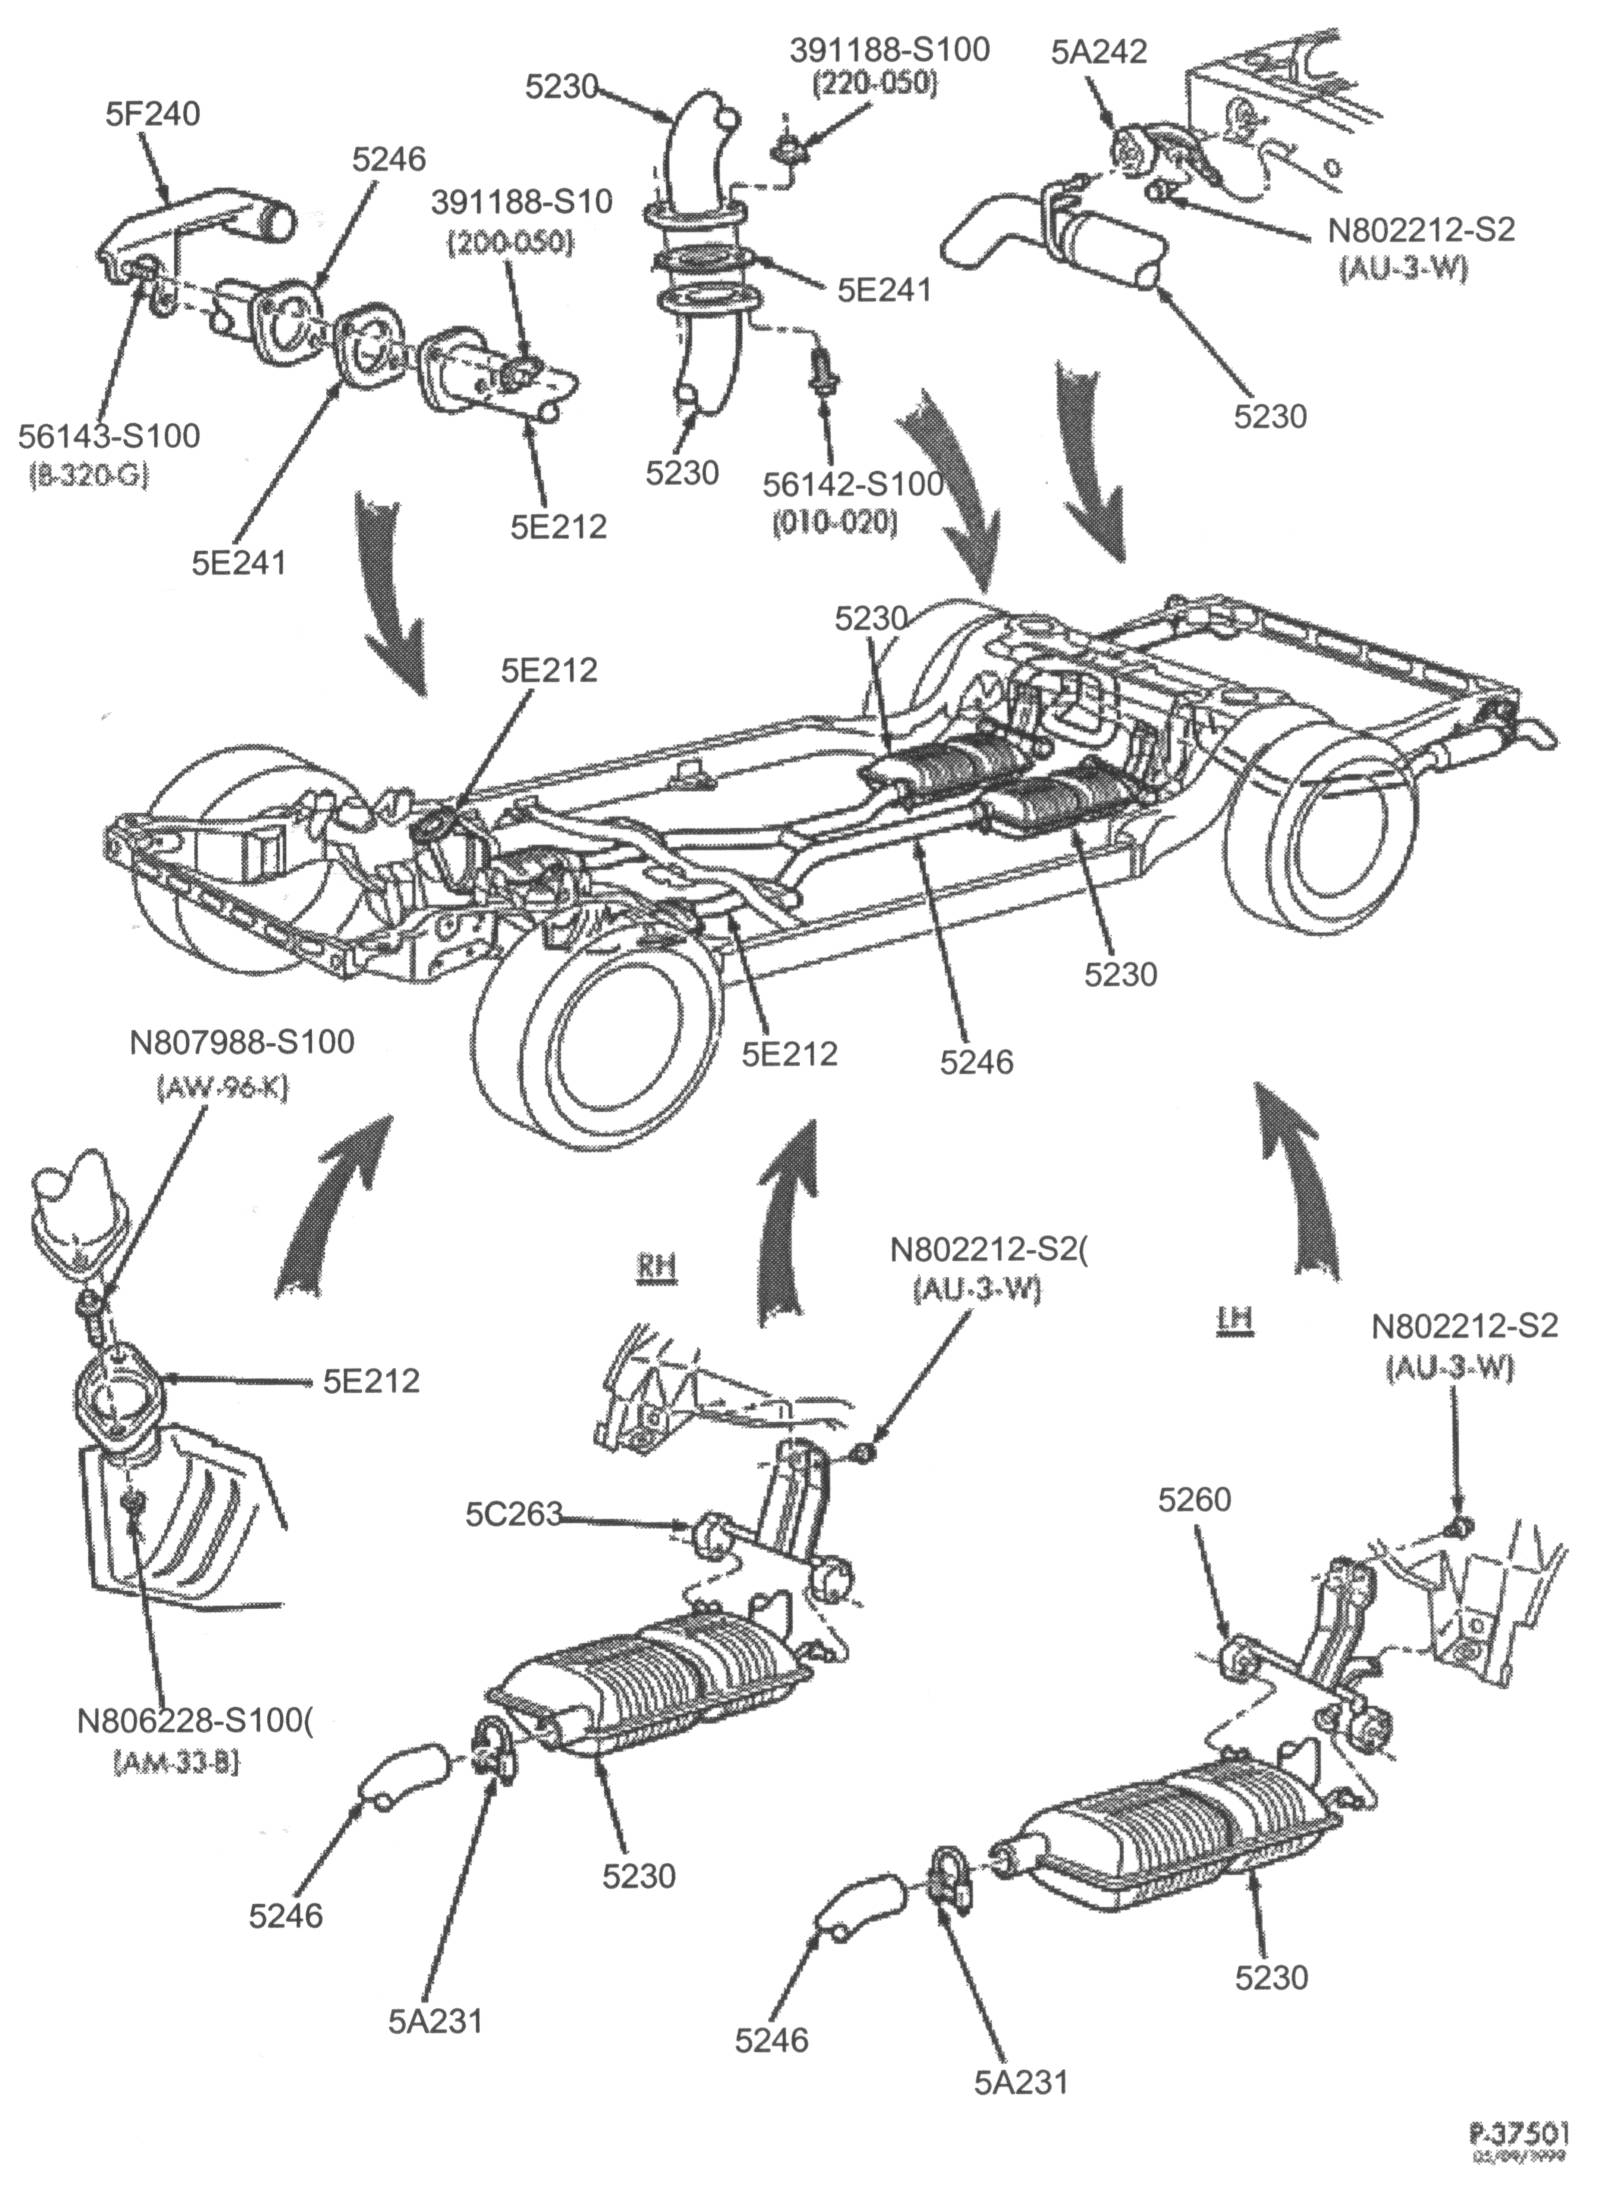 Ford Focus Exhaust Manifold Diagram Auto Parts Diagrams